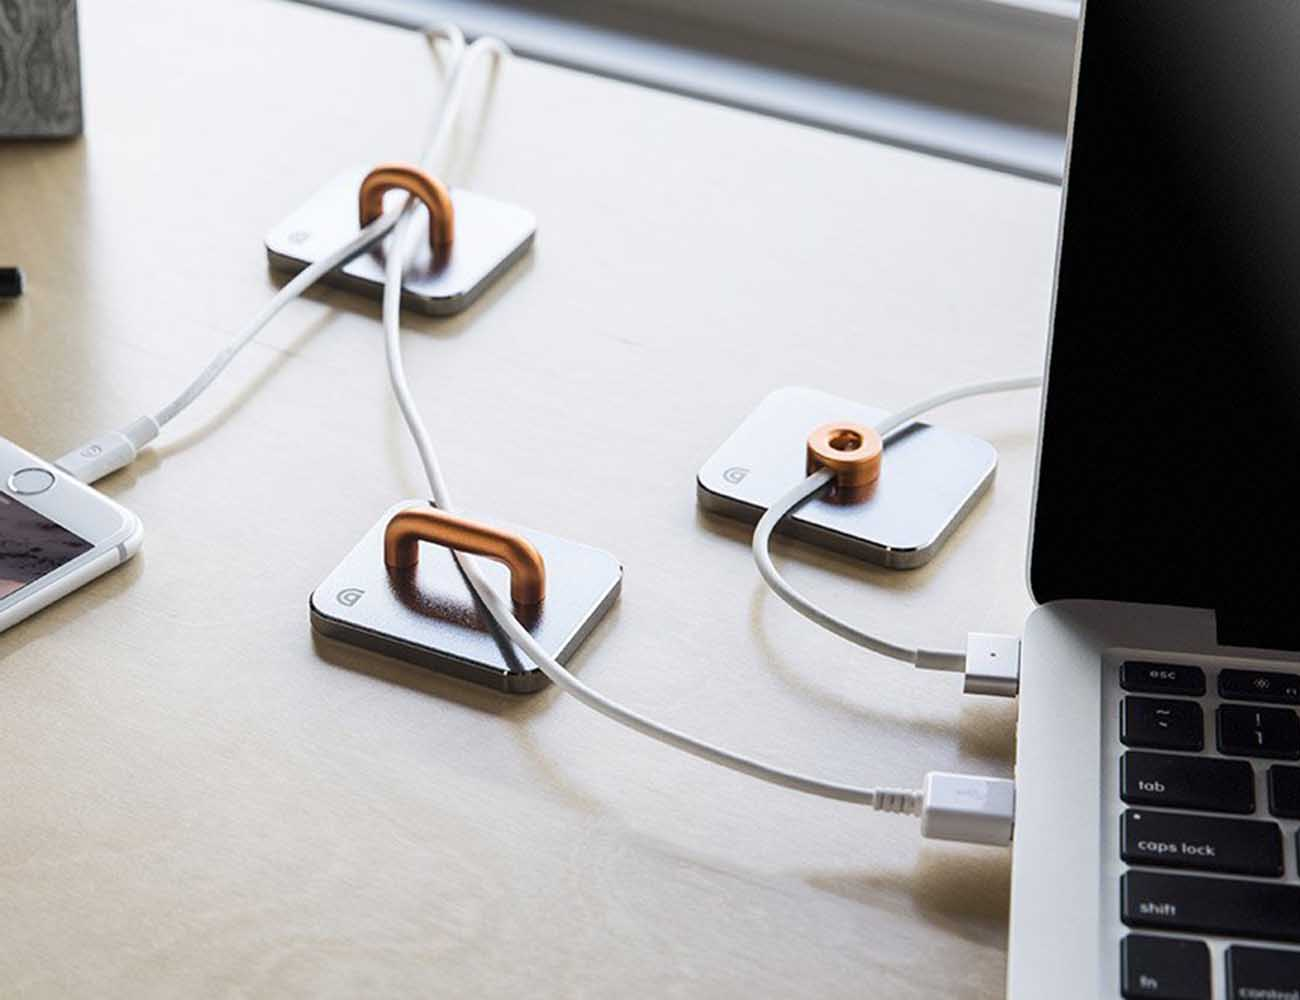 Guide Cable Management System by Griffin – With Magnetic Cable Anchors